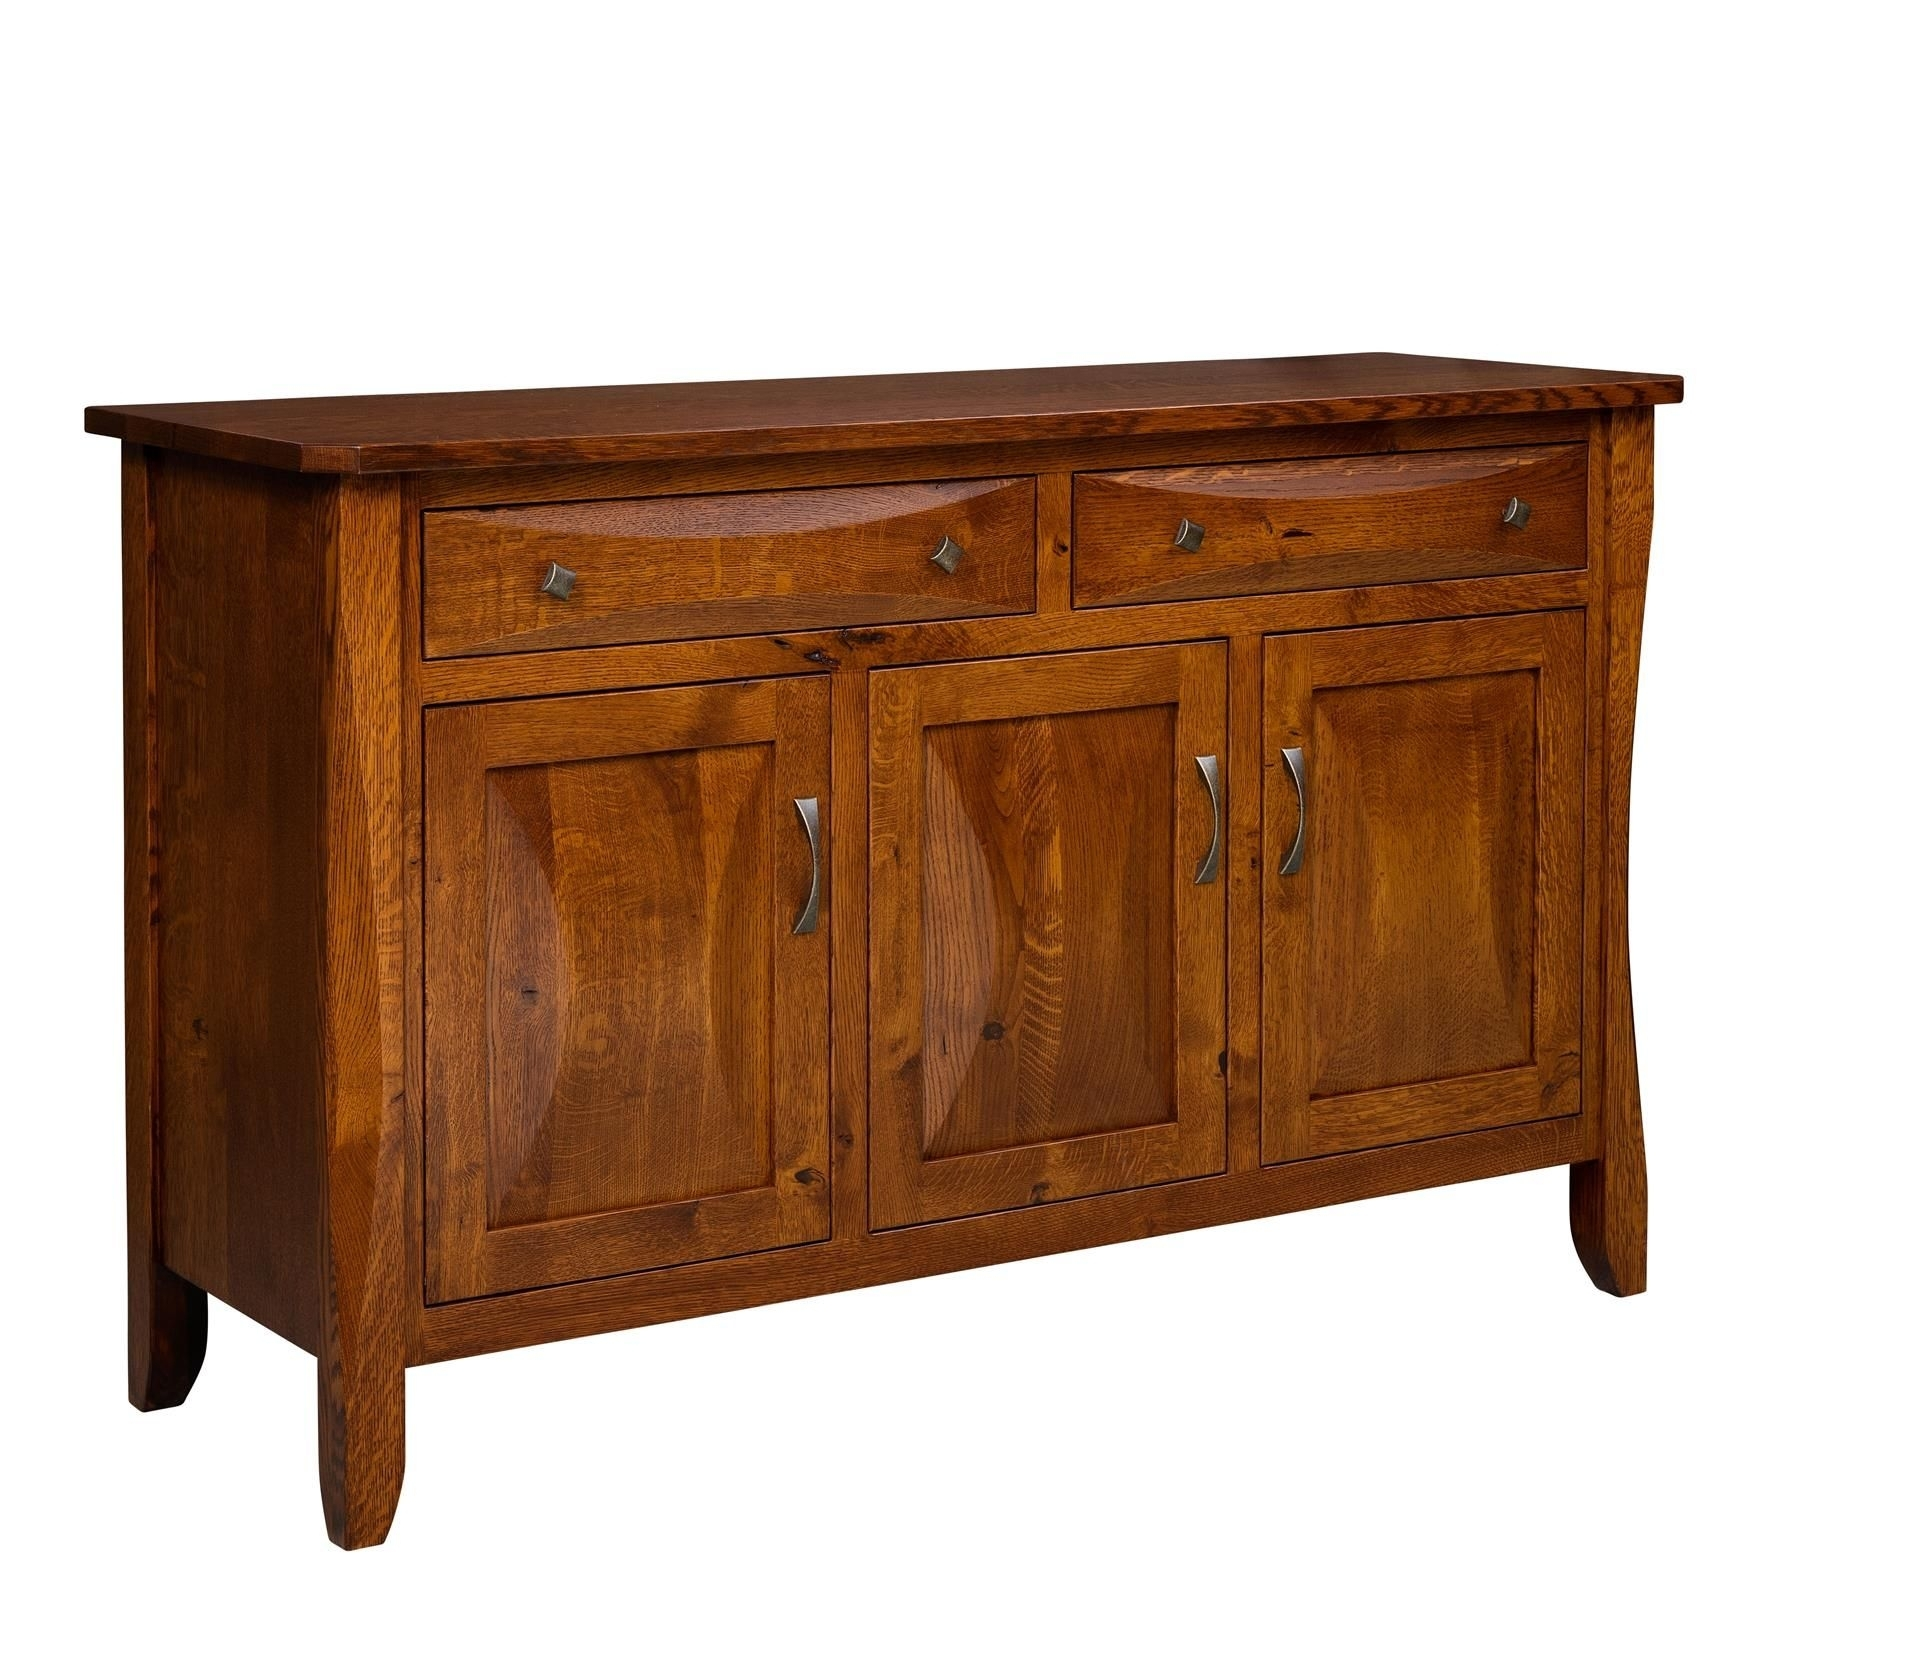 American Preston Sideboard | Preston, Storage Room And Craftsman within Craftsman Sideboards (Image 1 of 30)